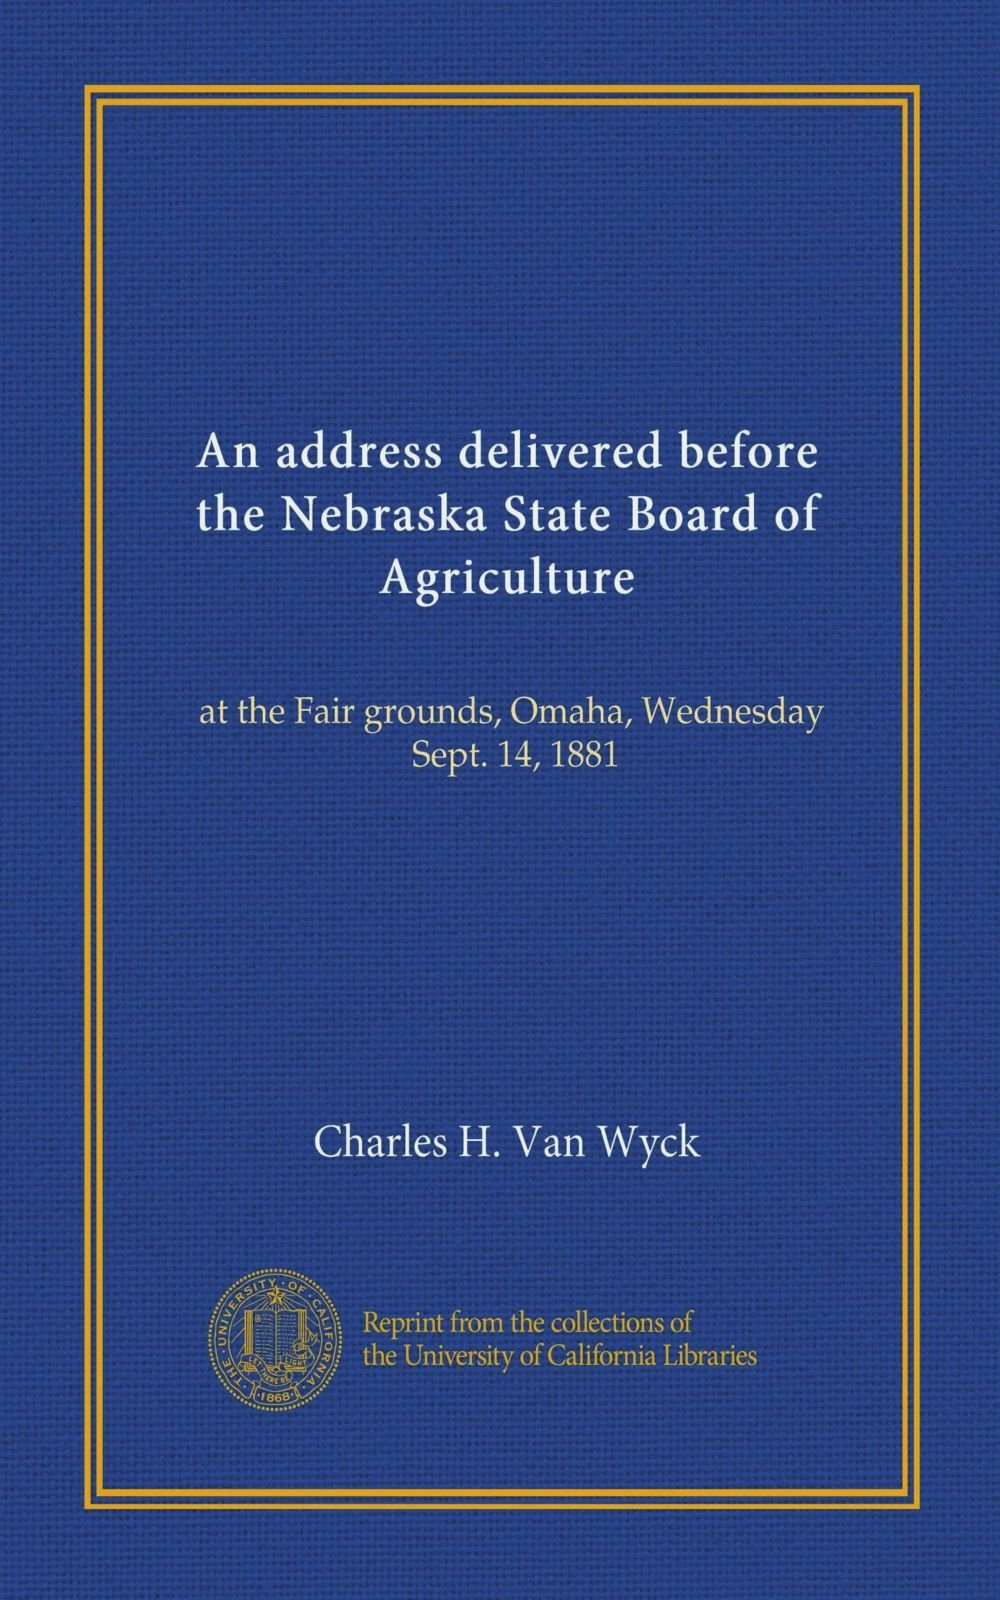 Download An address delivered before the Nebraska State Board of Agriculture: at the Fair grounds, Omaha, Wednesday, Sept. 14, 1881 PDF